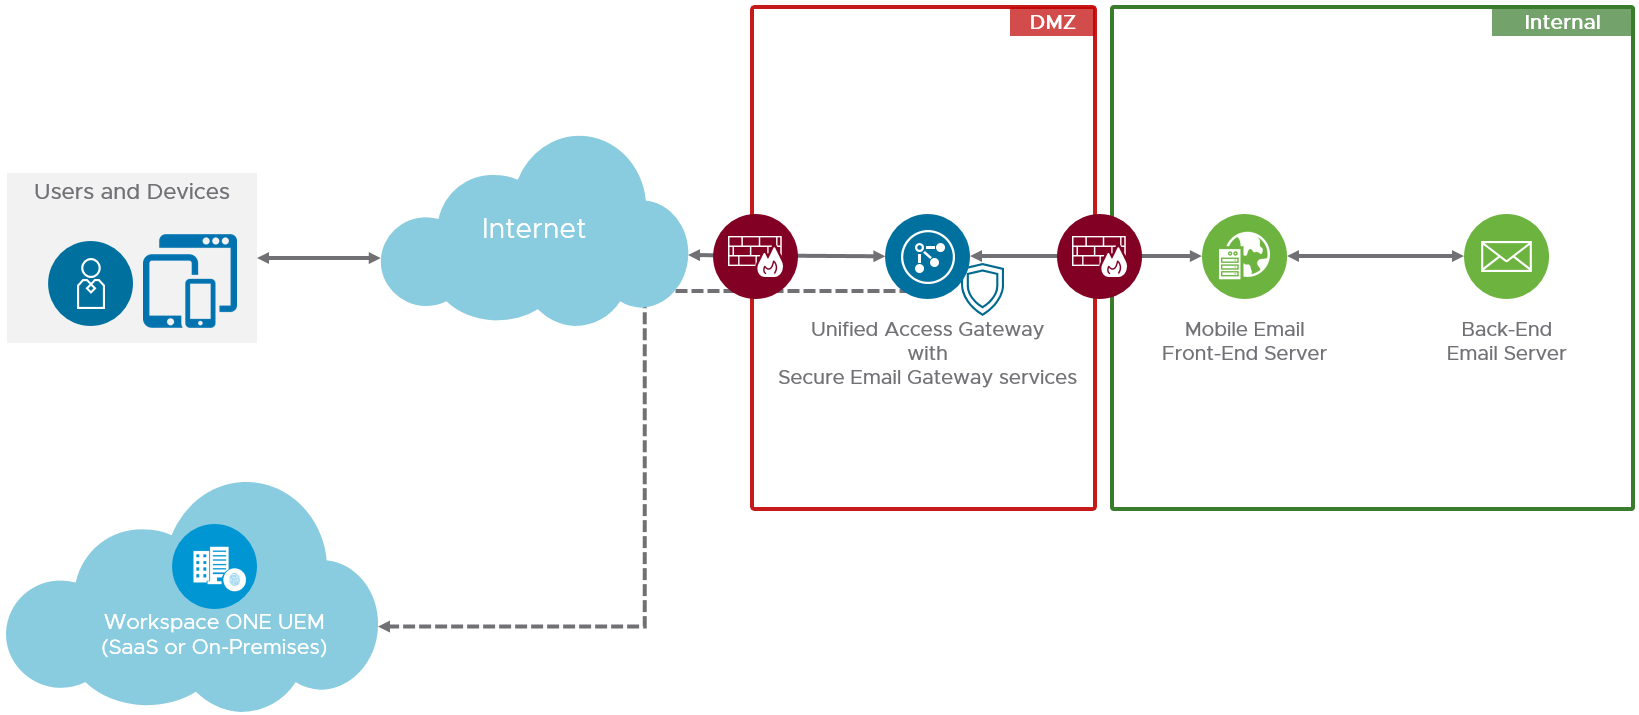 Workspace ONE UEM Secure Email Gateway Architecture